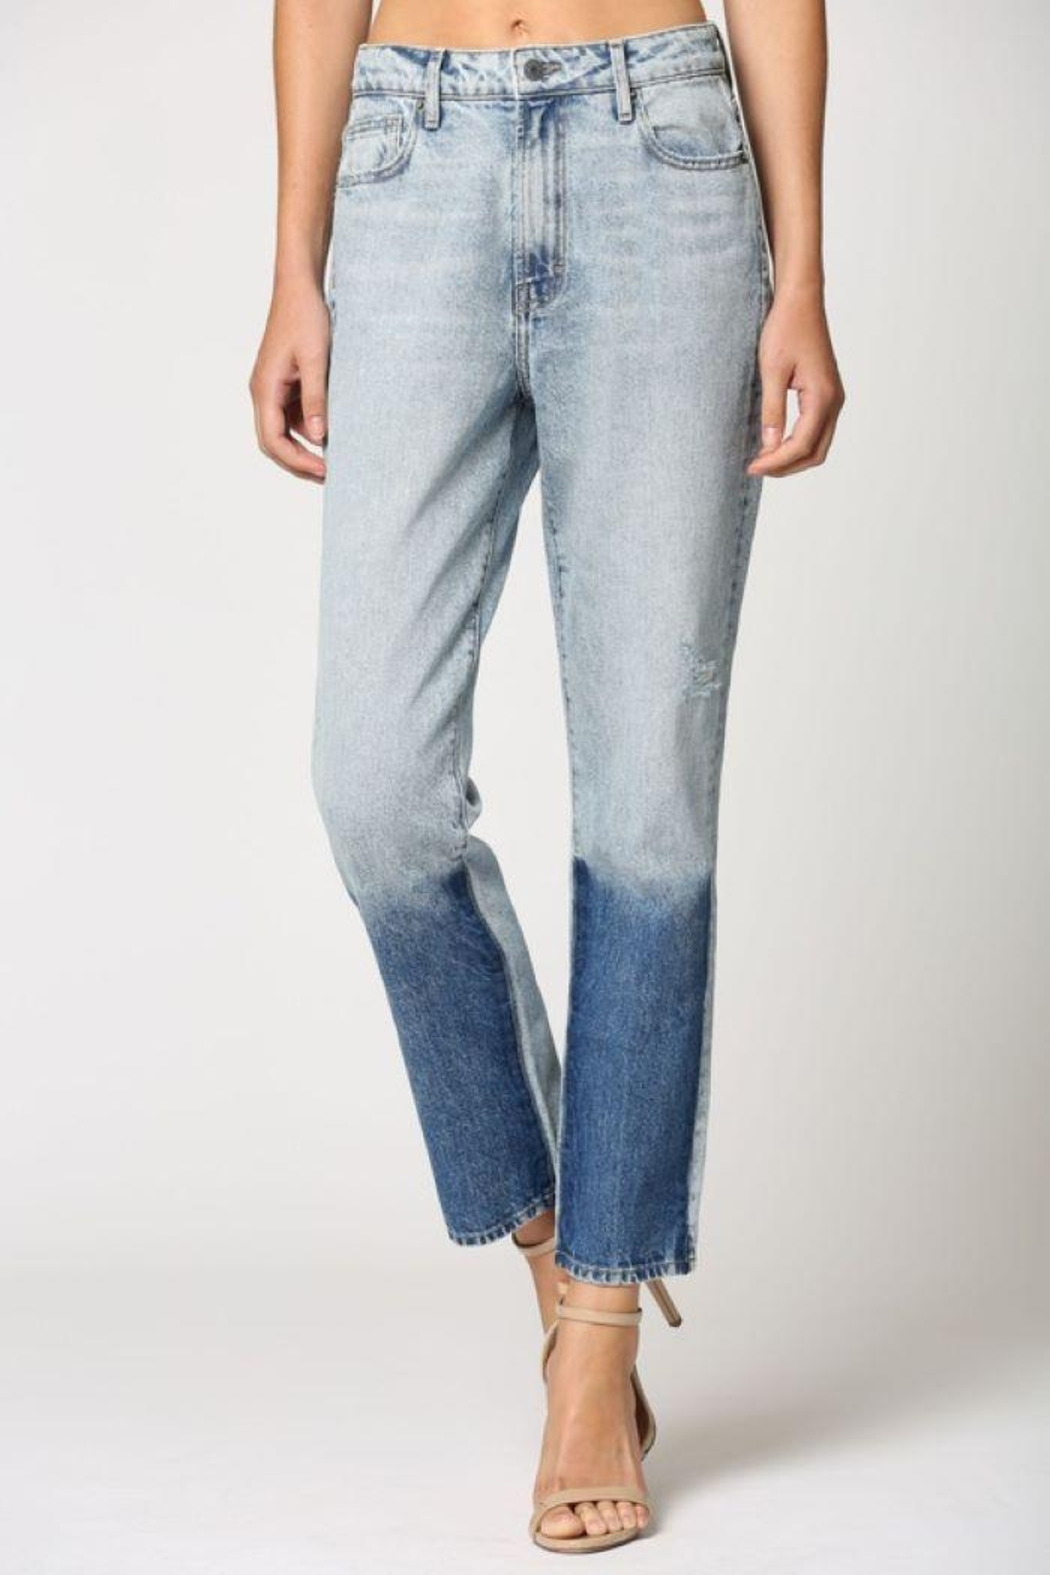 Hidden Jeans Light Wash Two Tone Straight Jeans - Back Cropped Image